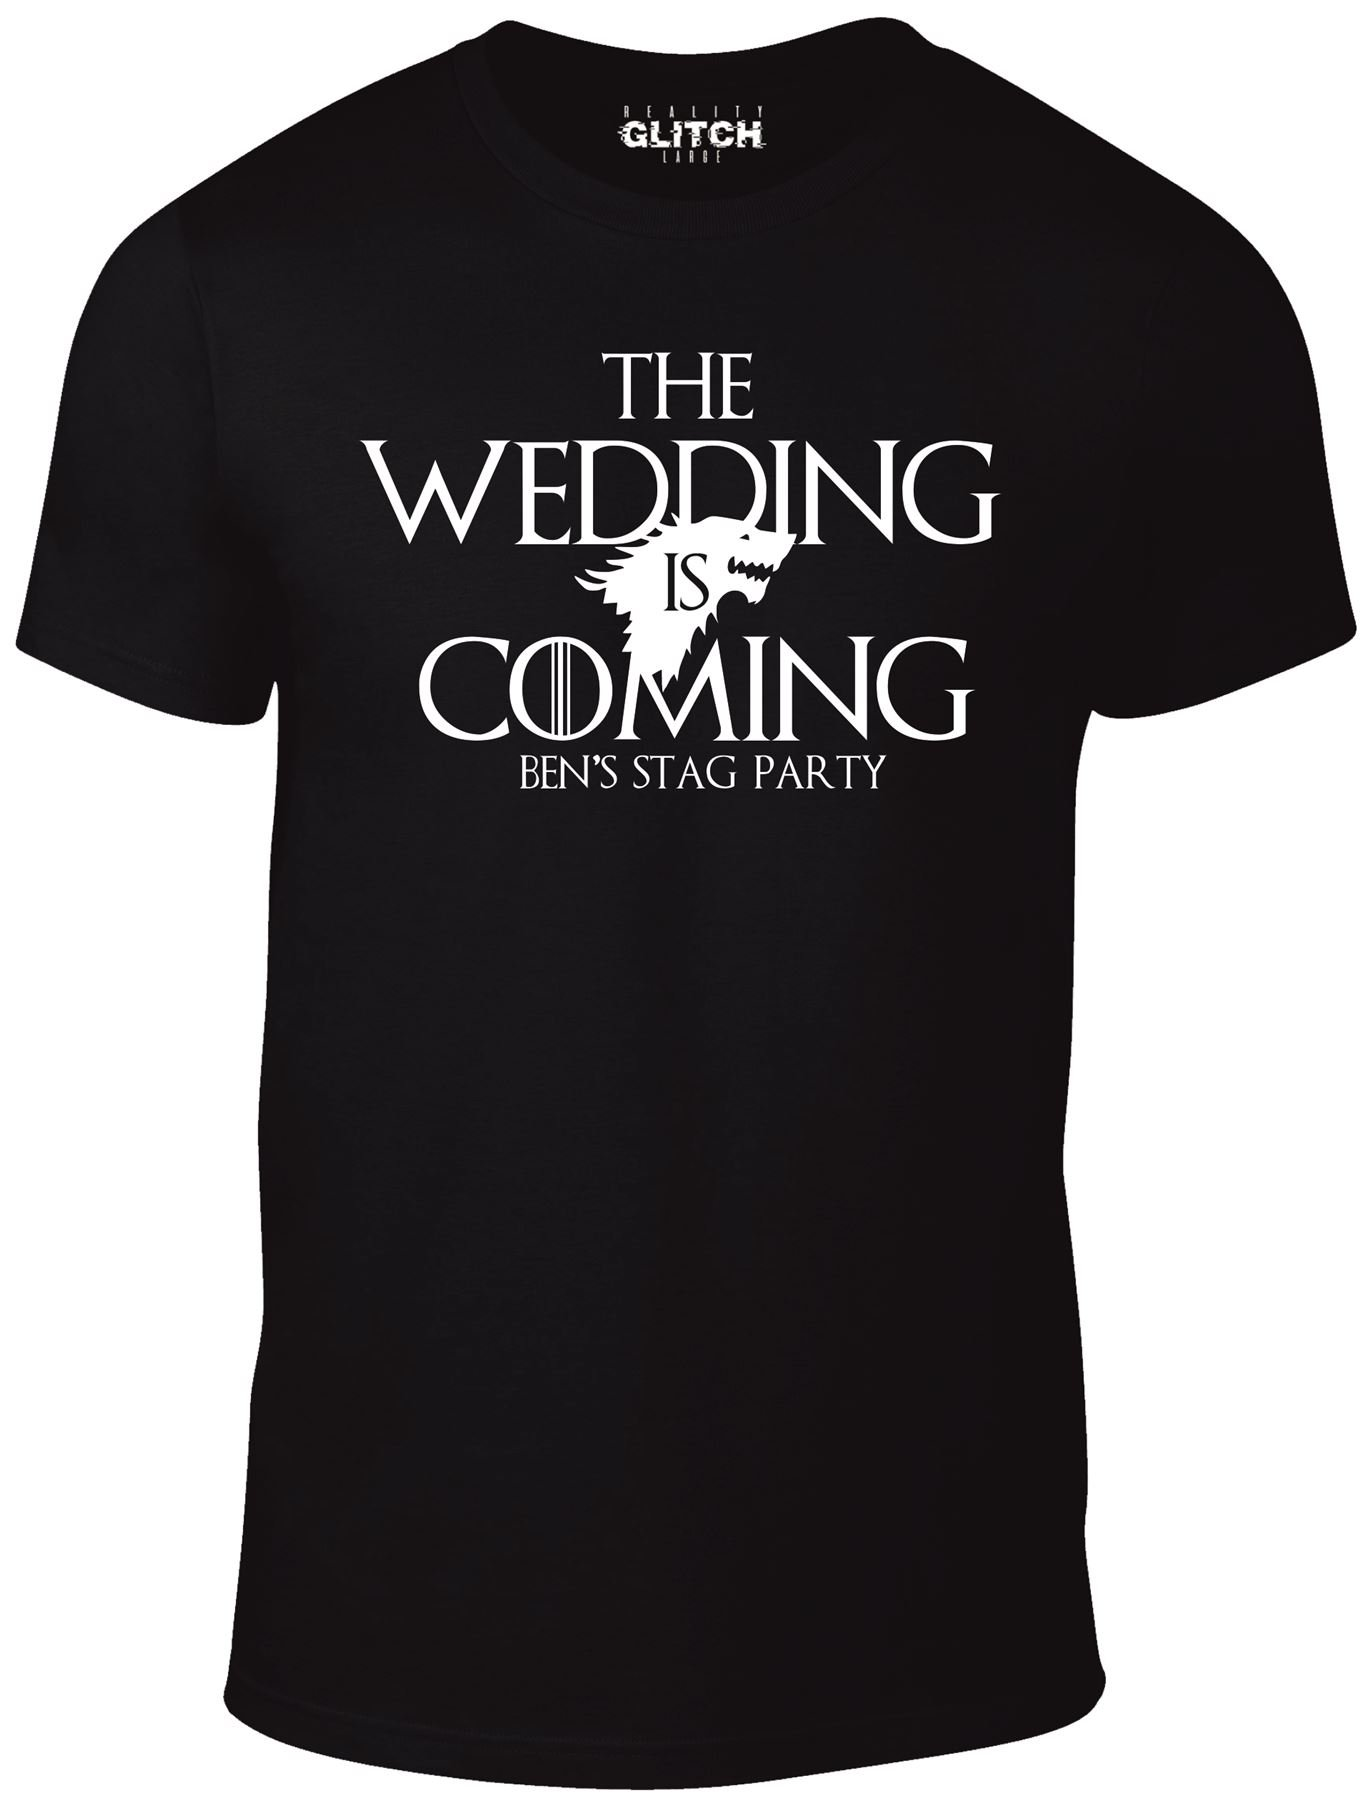 Reality Glitch The Wedding is Coming Custom Stag T-Shirt - Inspired Design (L, Black)